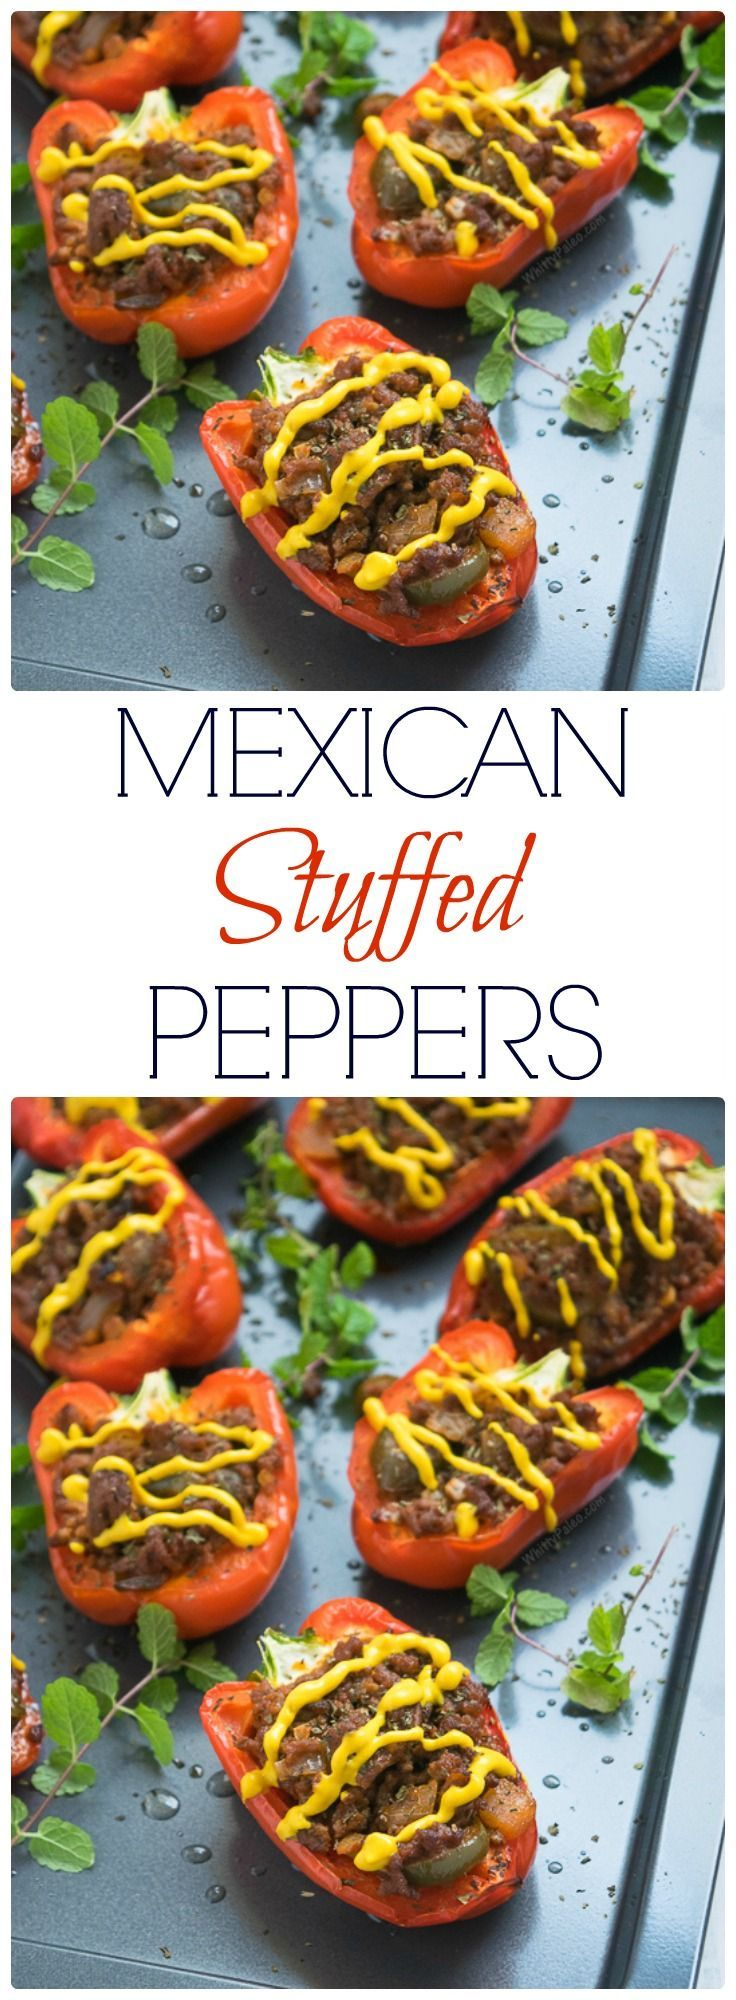 Easy Paleo Mexican Stuffed Peppers from WhittyPaleo.com